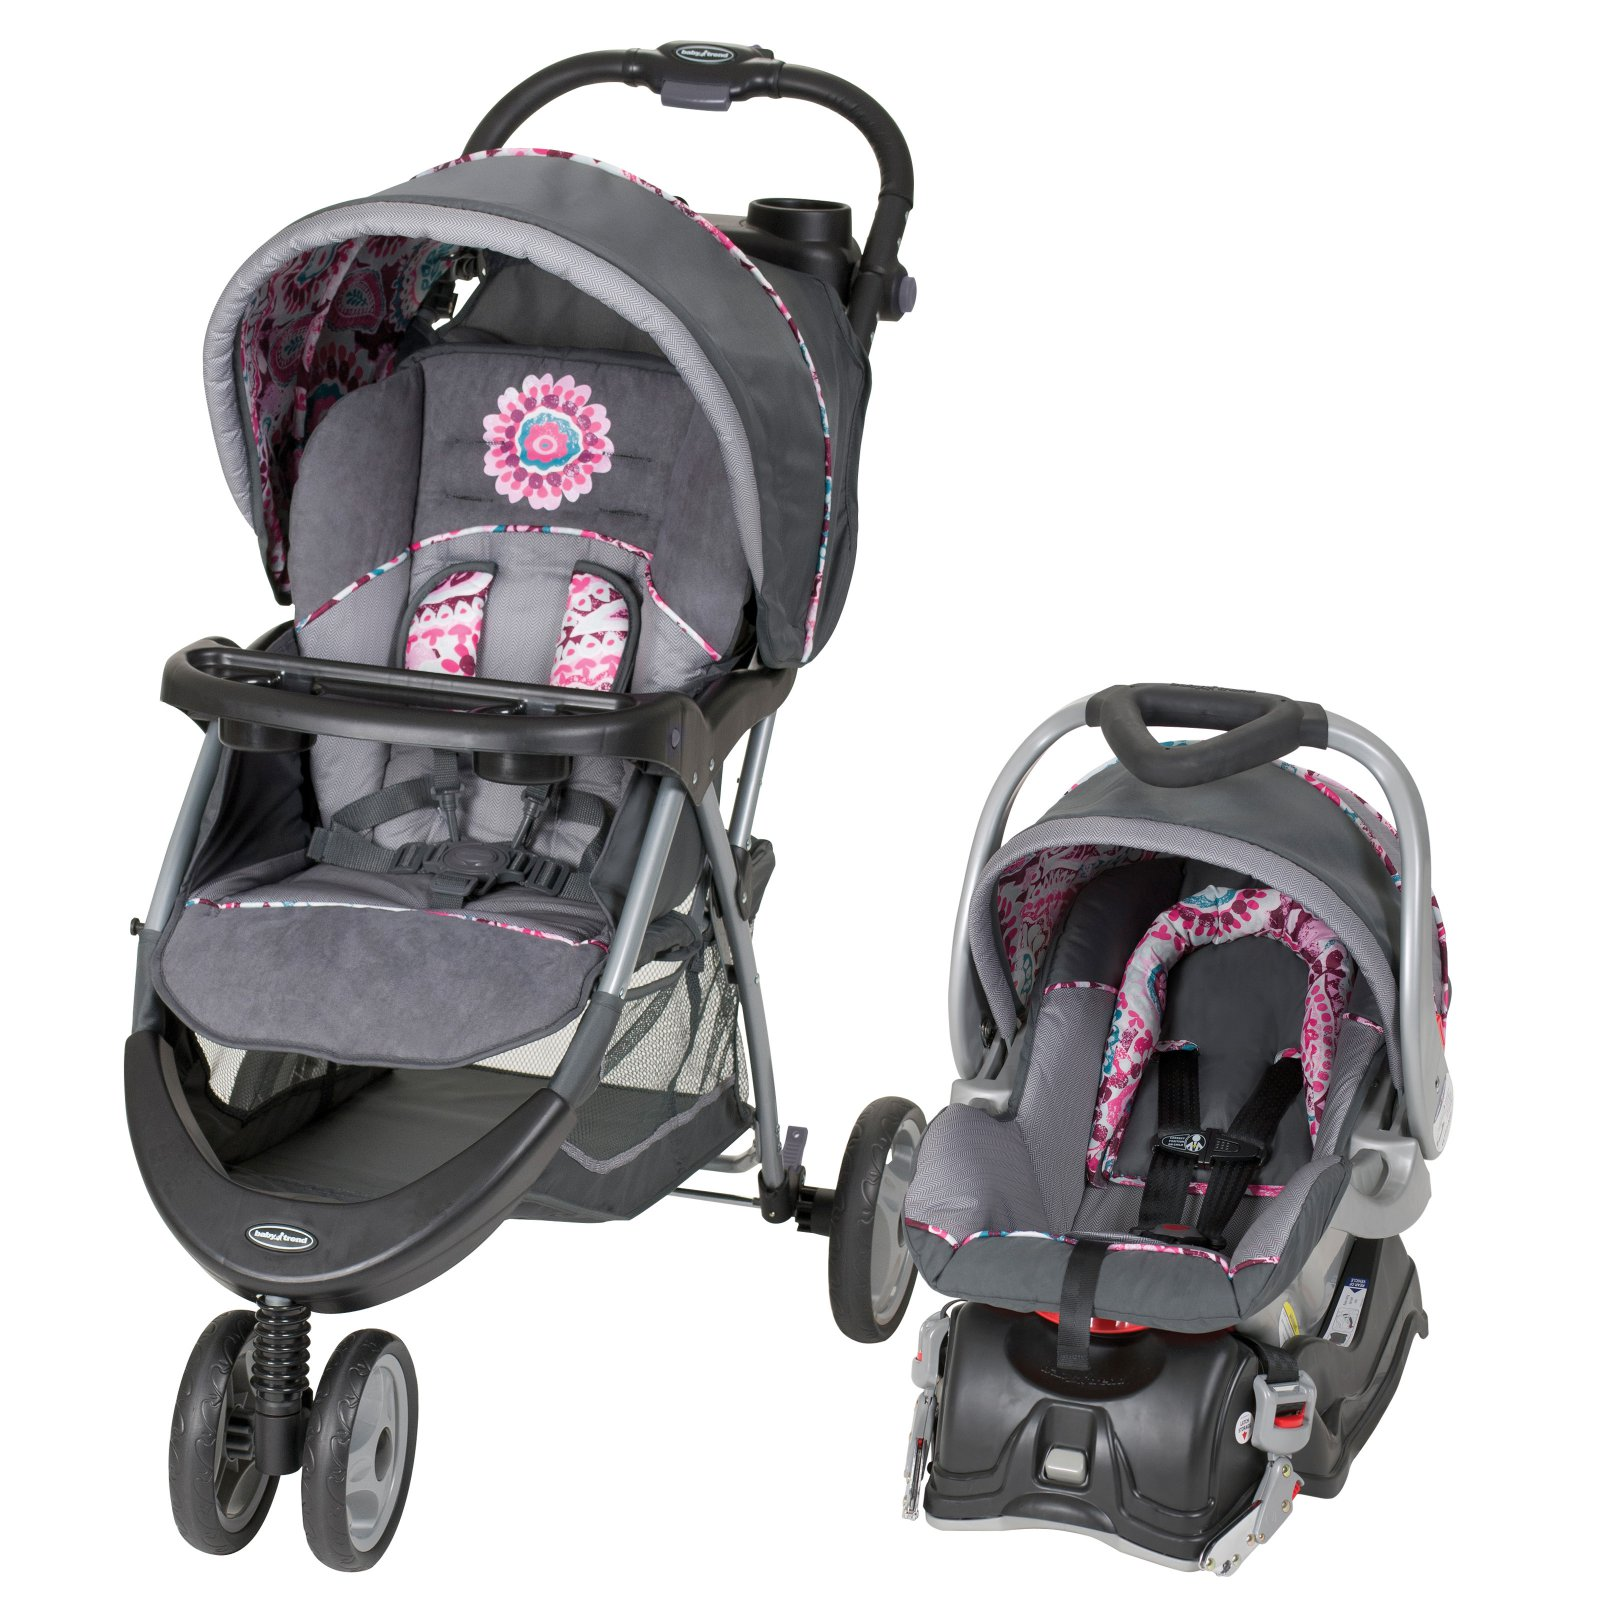 Baby Trend EZ Ride 5 Travel System, Paisley by Baby Trend